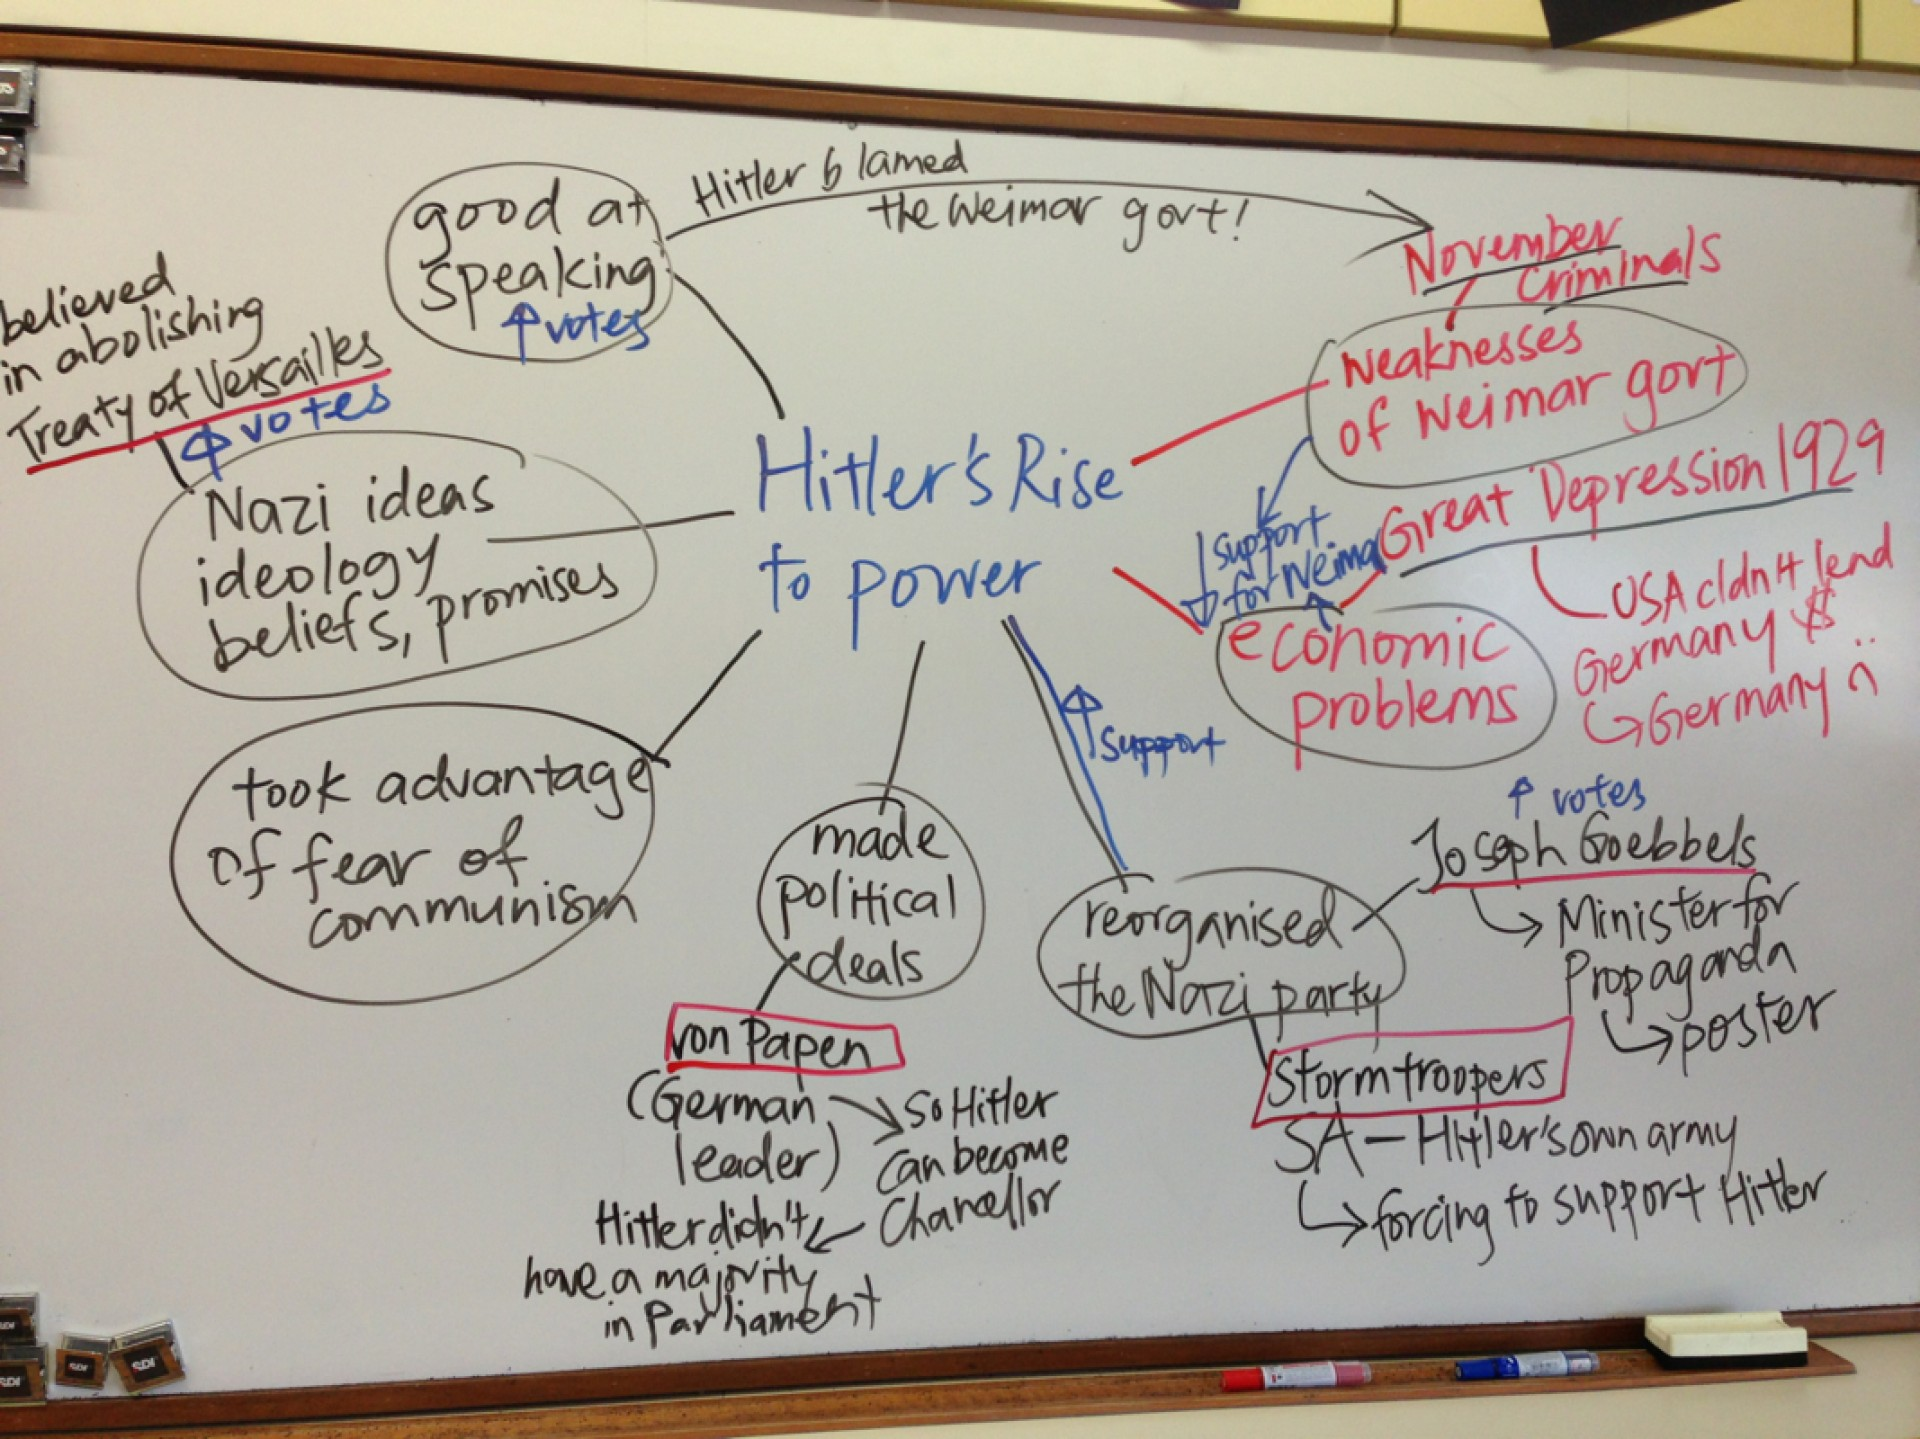 001 Essay Example Hitlers Rise To Power 1349216 Orig Impressive Hitler's Free Reasons For 1933 1920